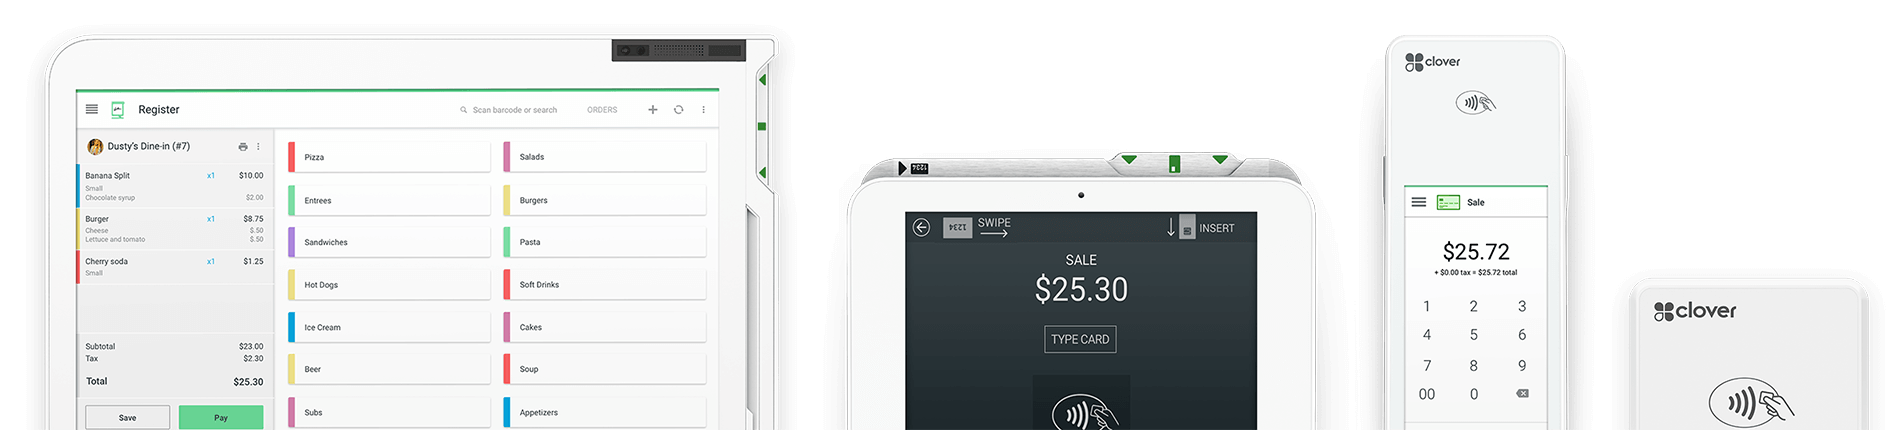 Clover POS System Devices